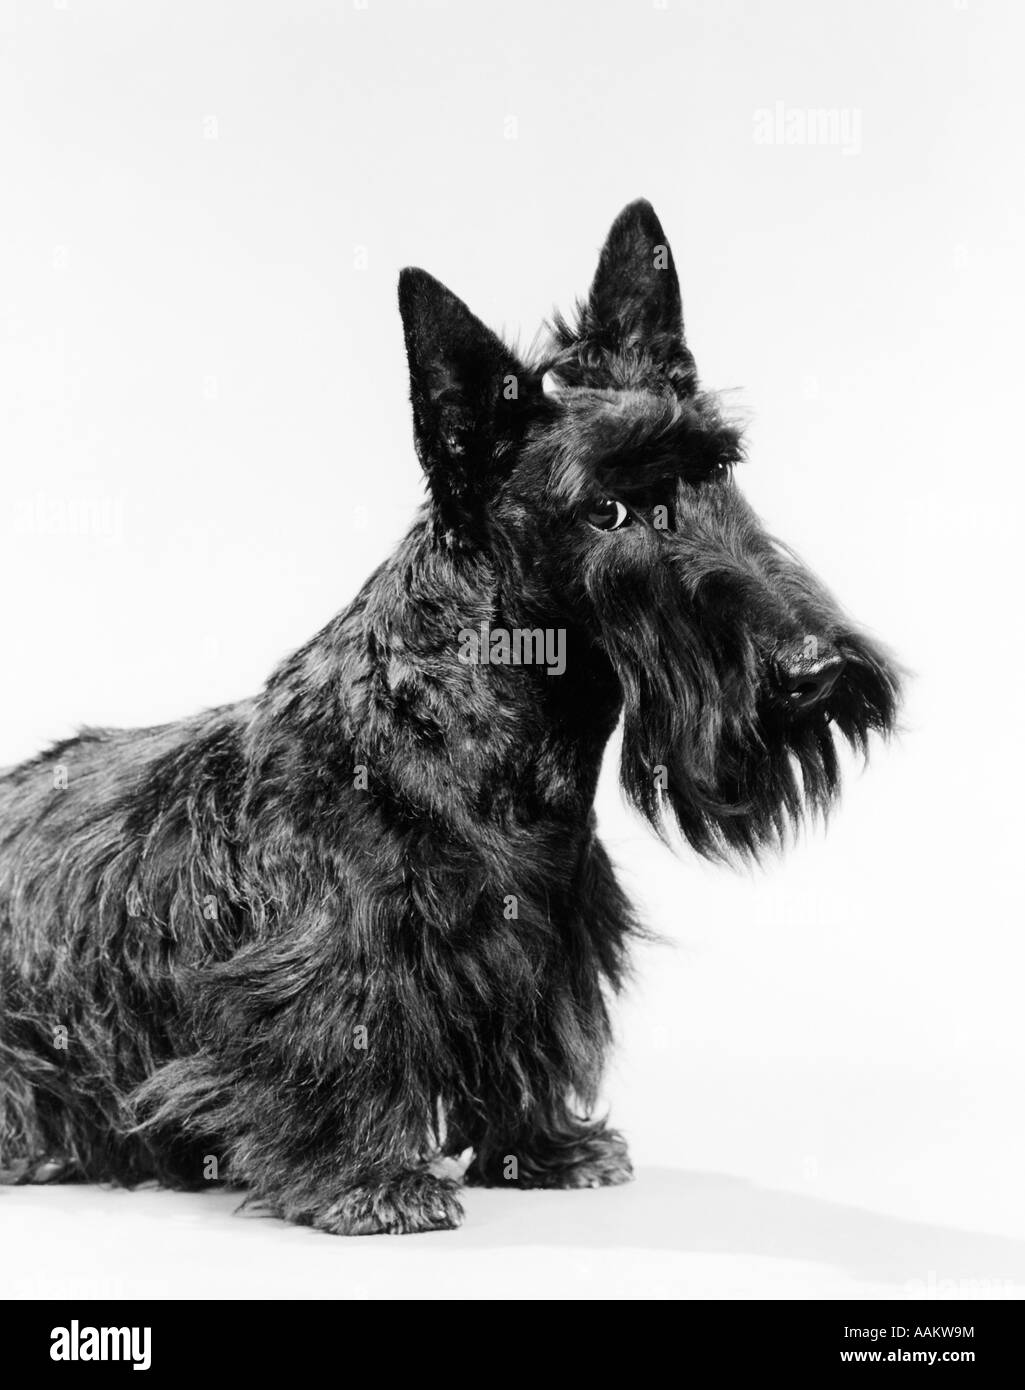 BLACK SCOTTIE SCOTTISH TERRIER DOG WITH HEAD SLIGHTLY TILTED LOOKING AT CAMERA - Stock Image